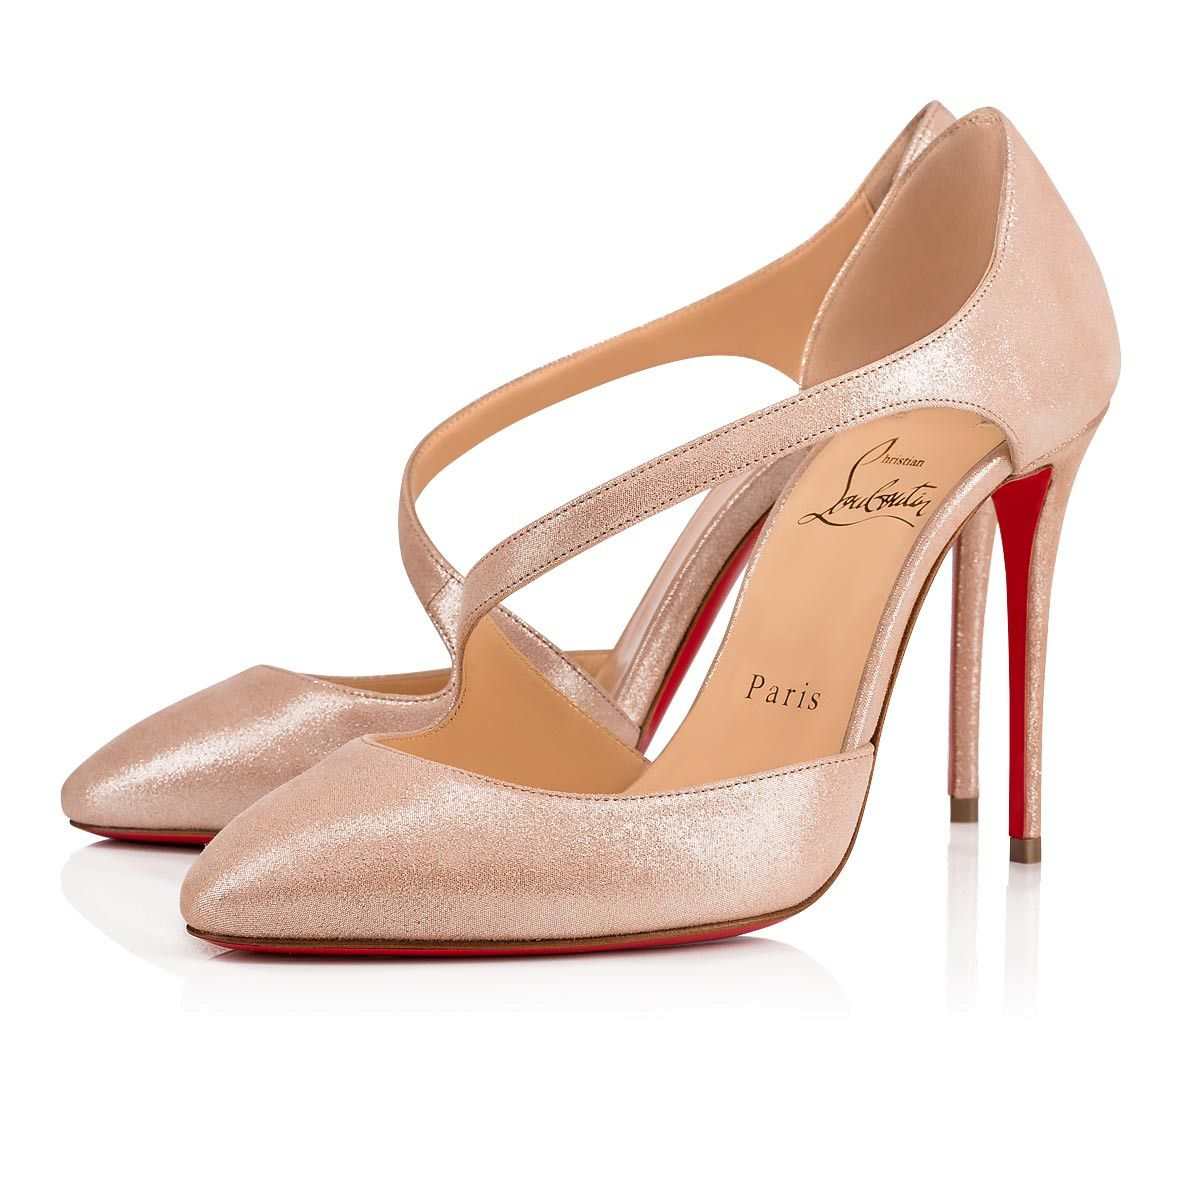 5c5afa050cfd Shoes - Catchy One - Christian Louboutin